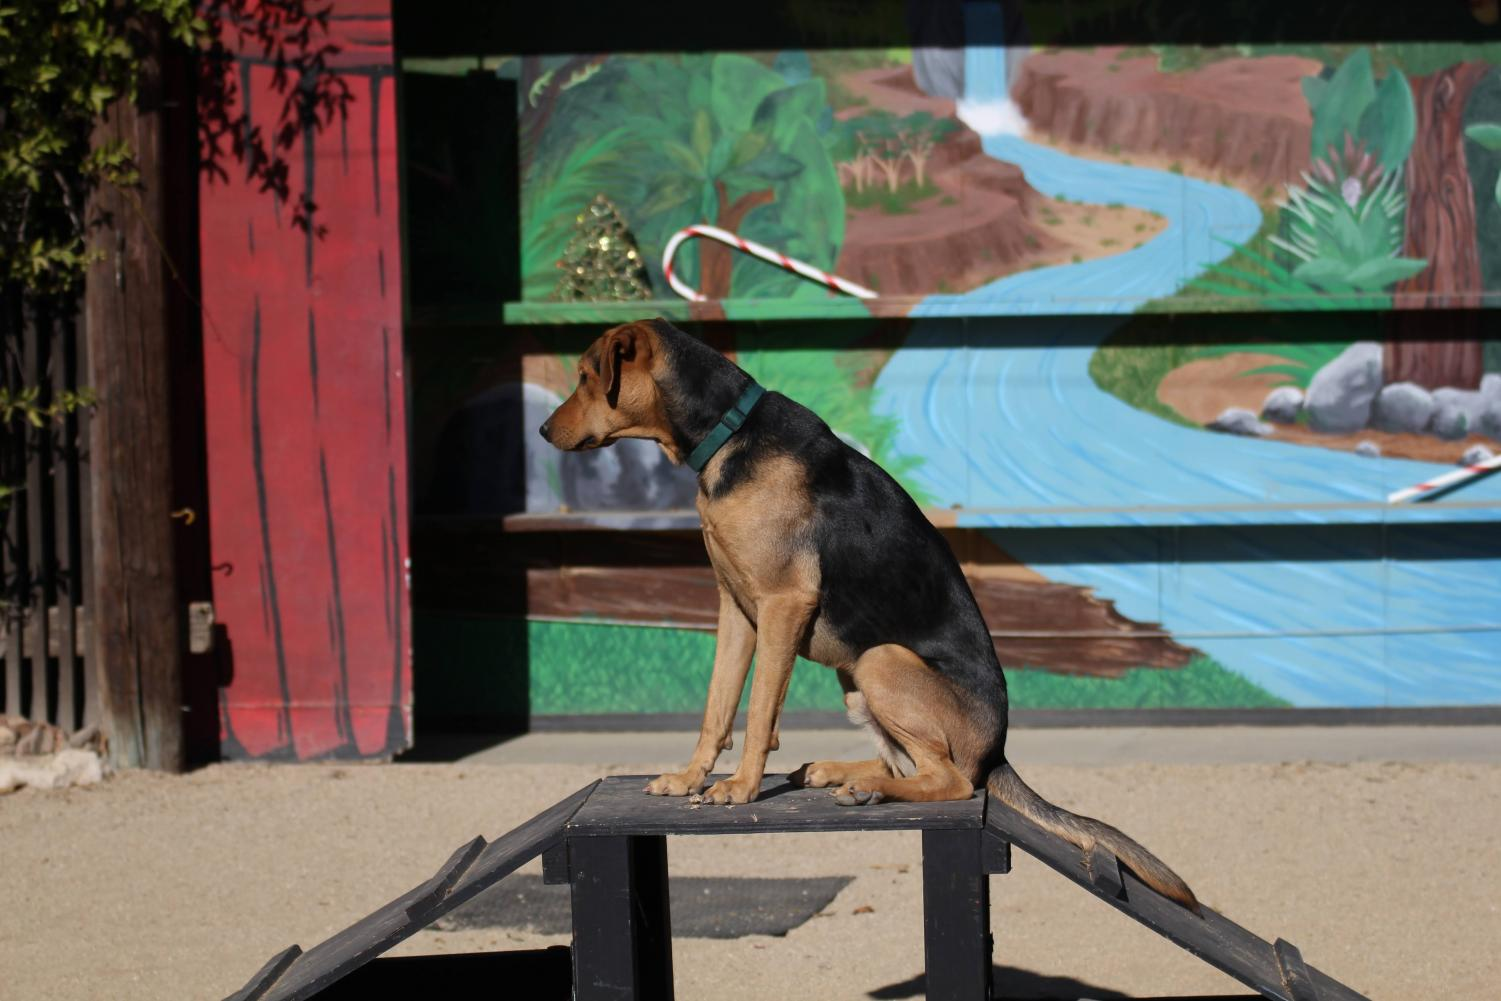 Buzz, the domestic dog was presented in the show at America's Teaching Zoo Theater.